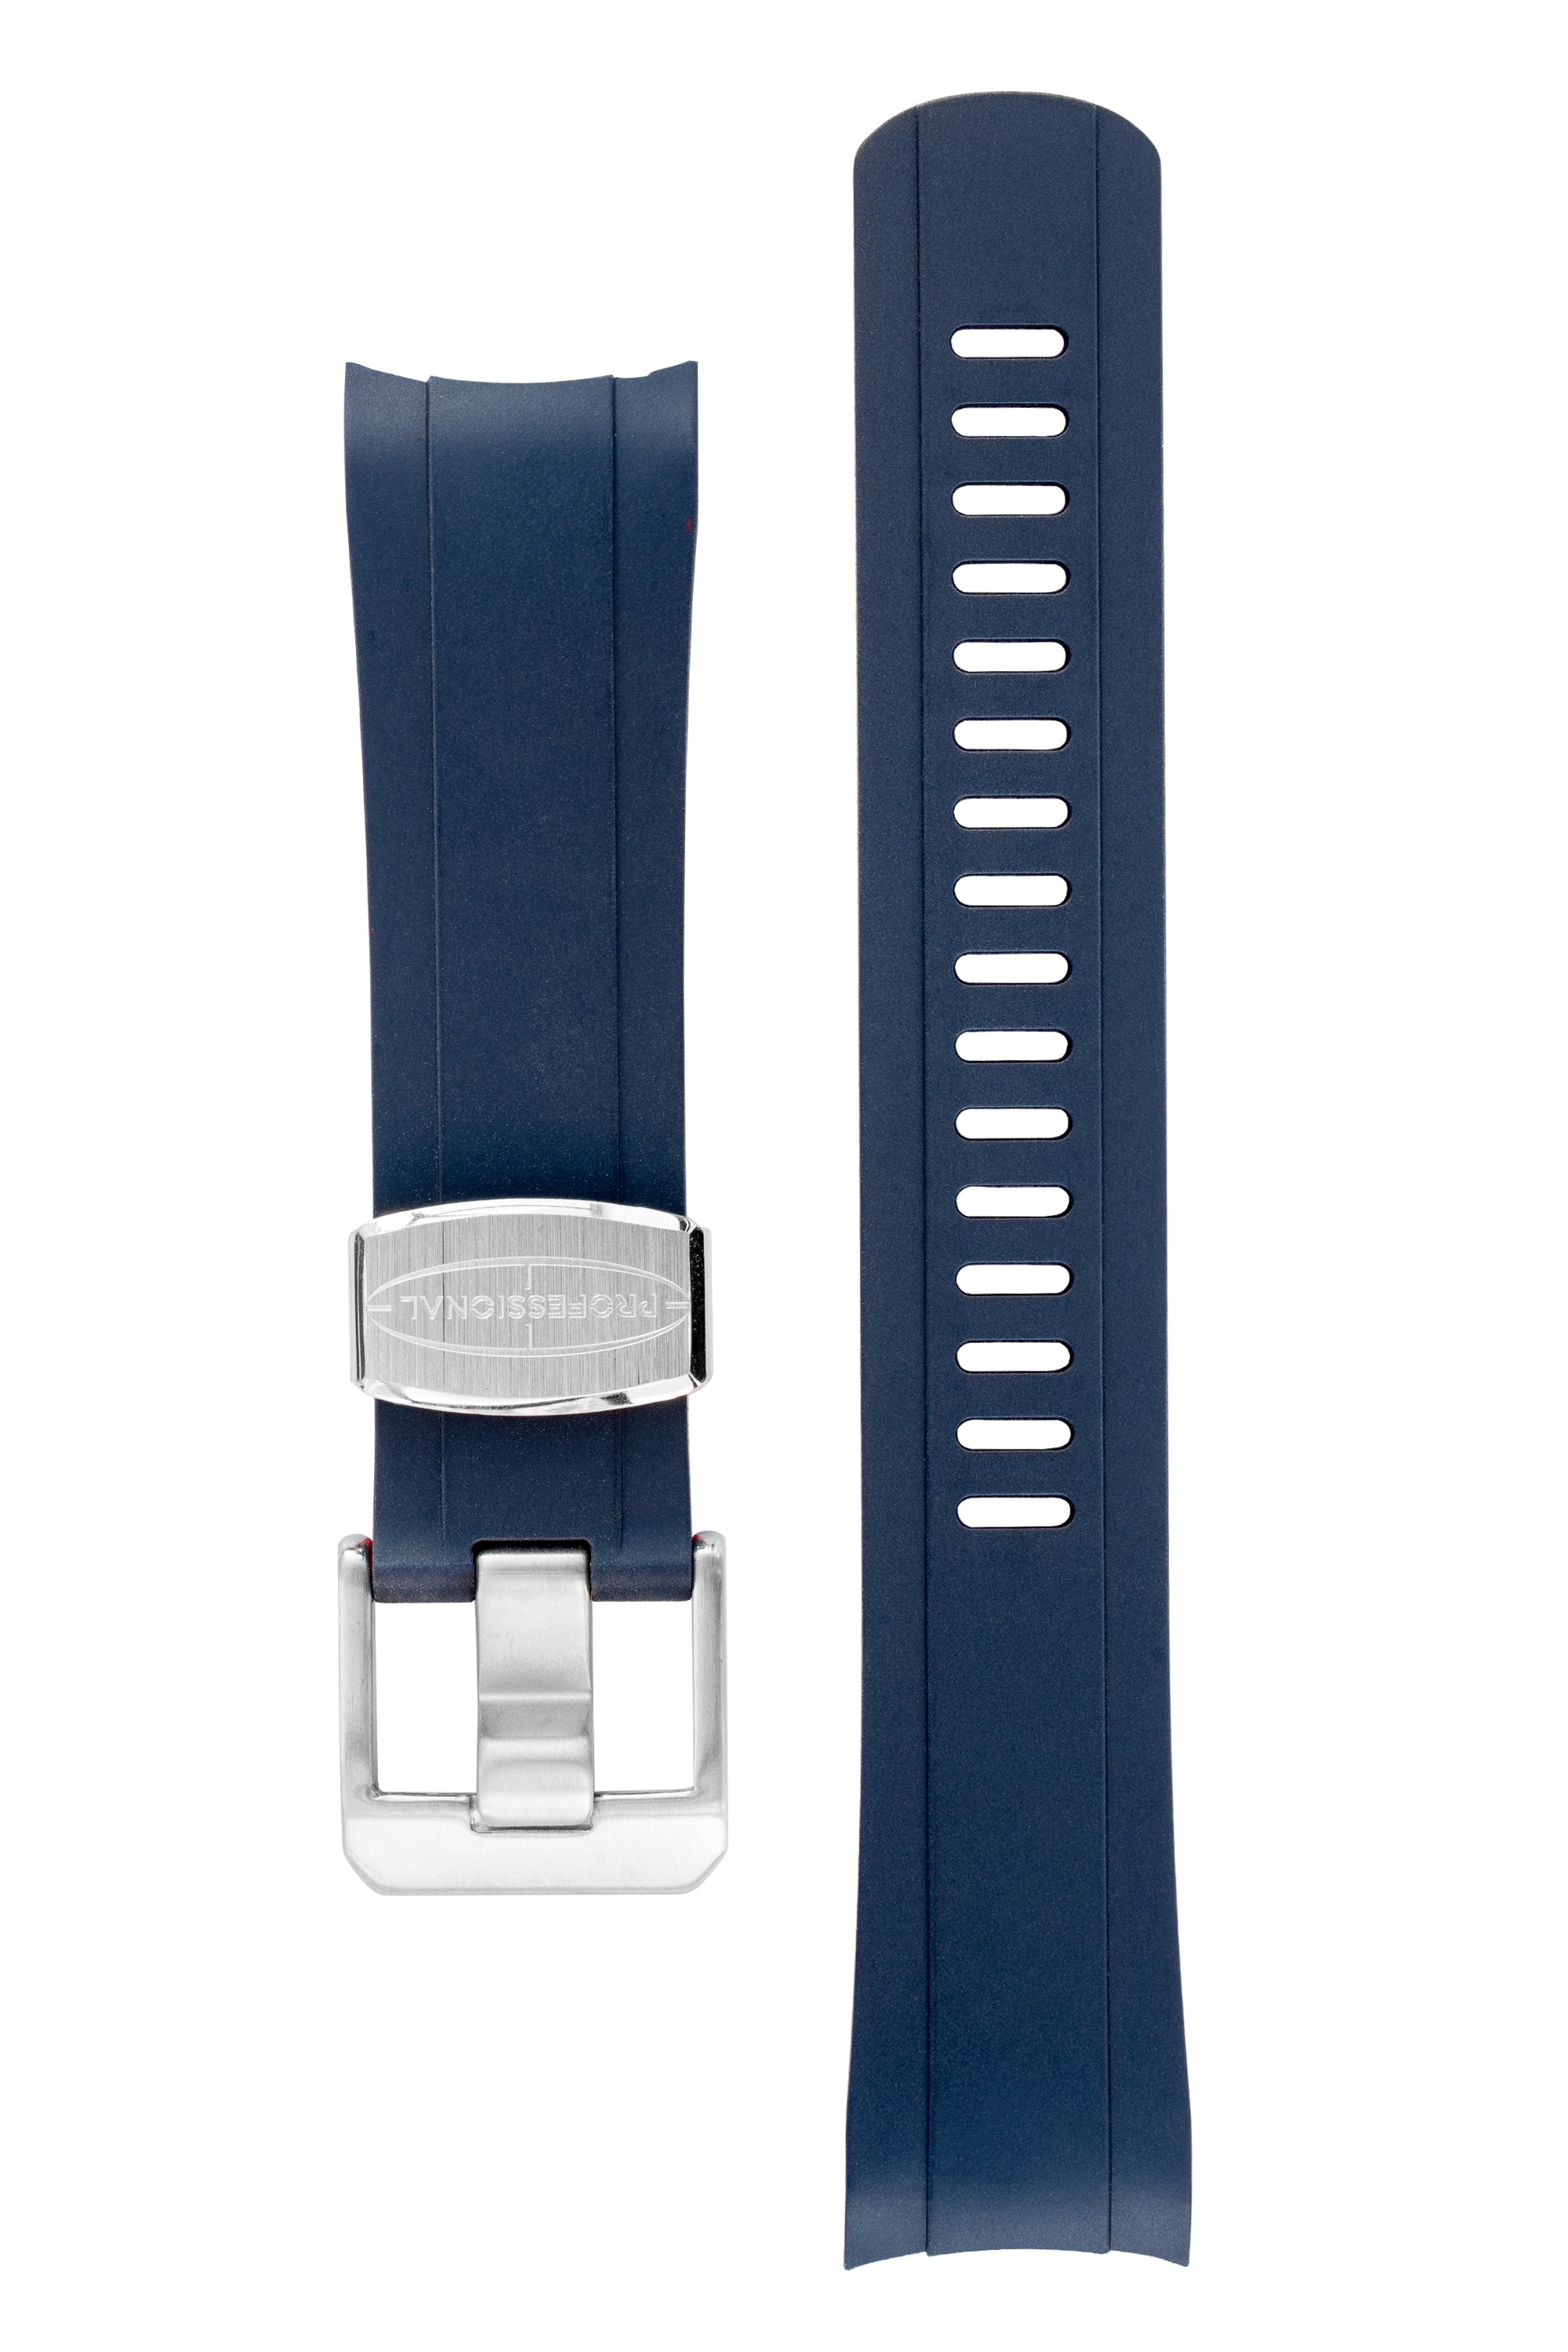 CRAFTER BLUE Rubber Watch Strap for Seiko SKX Series – NAVY BLUE & RED with Rubber & Steel Keepers